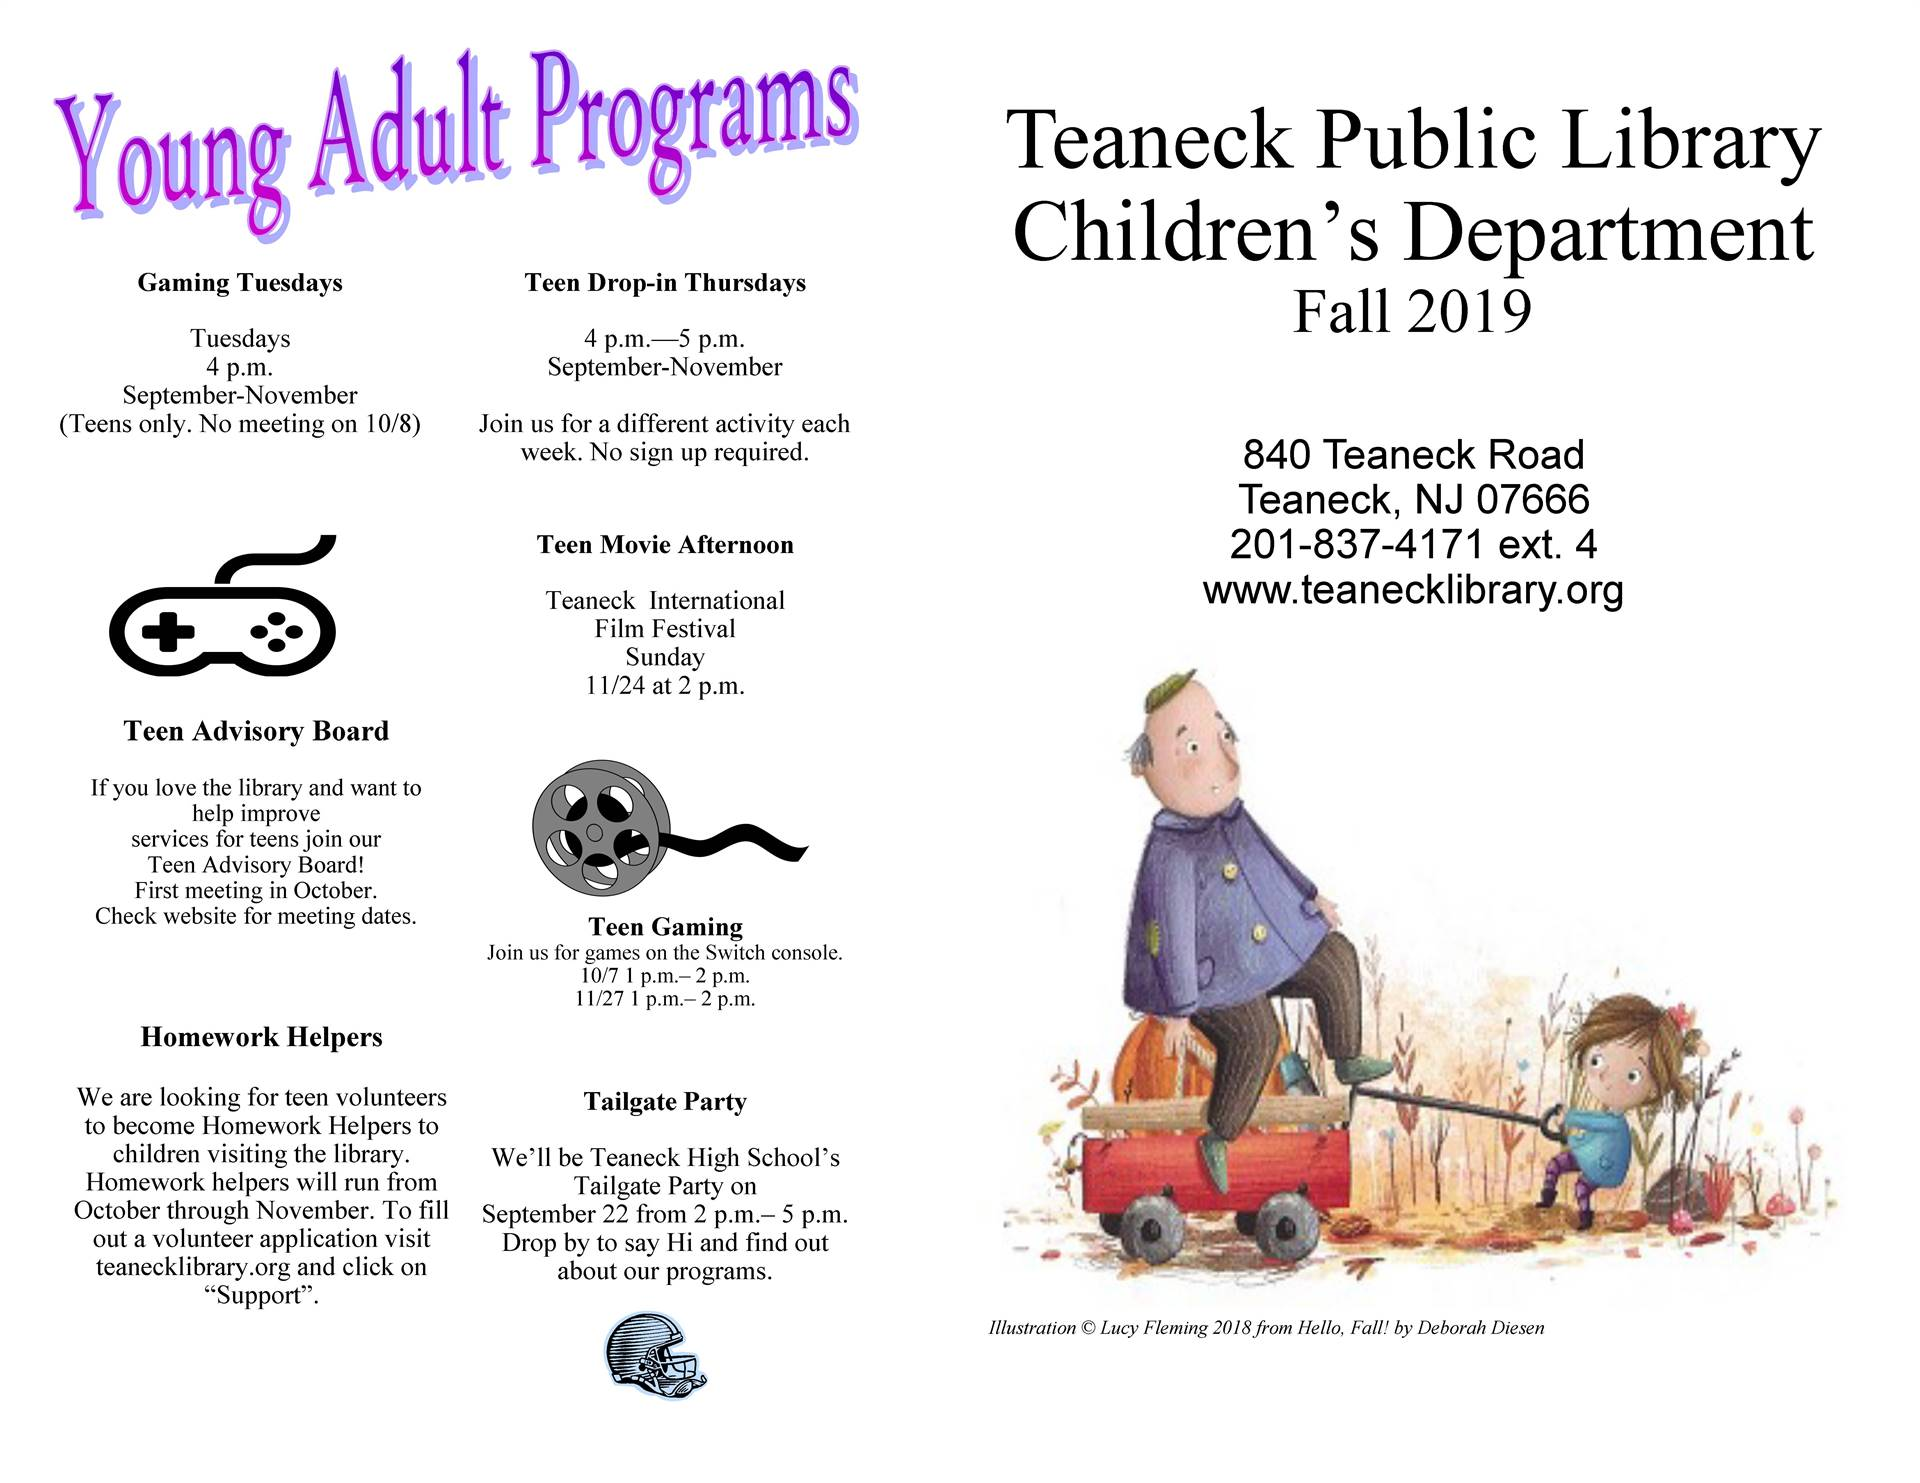 Teaneck Public Library Fall 2019 Pg 2